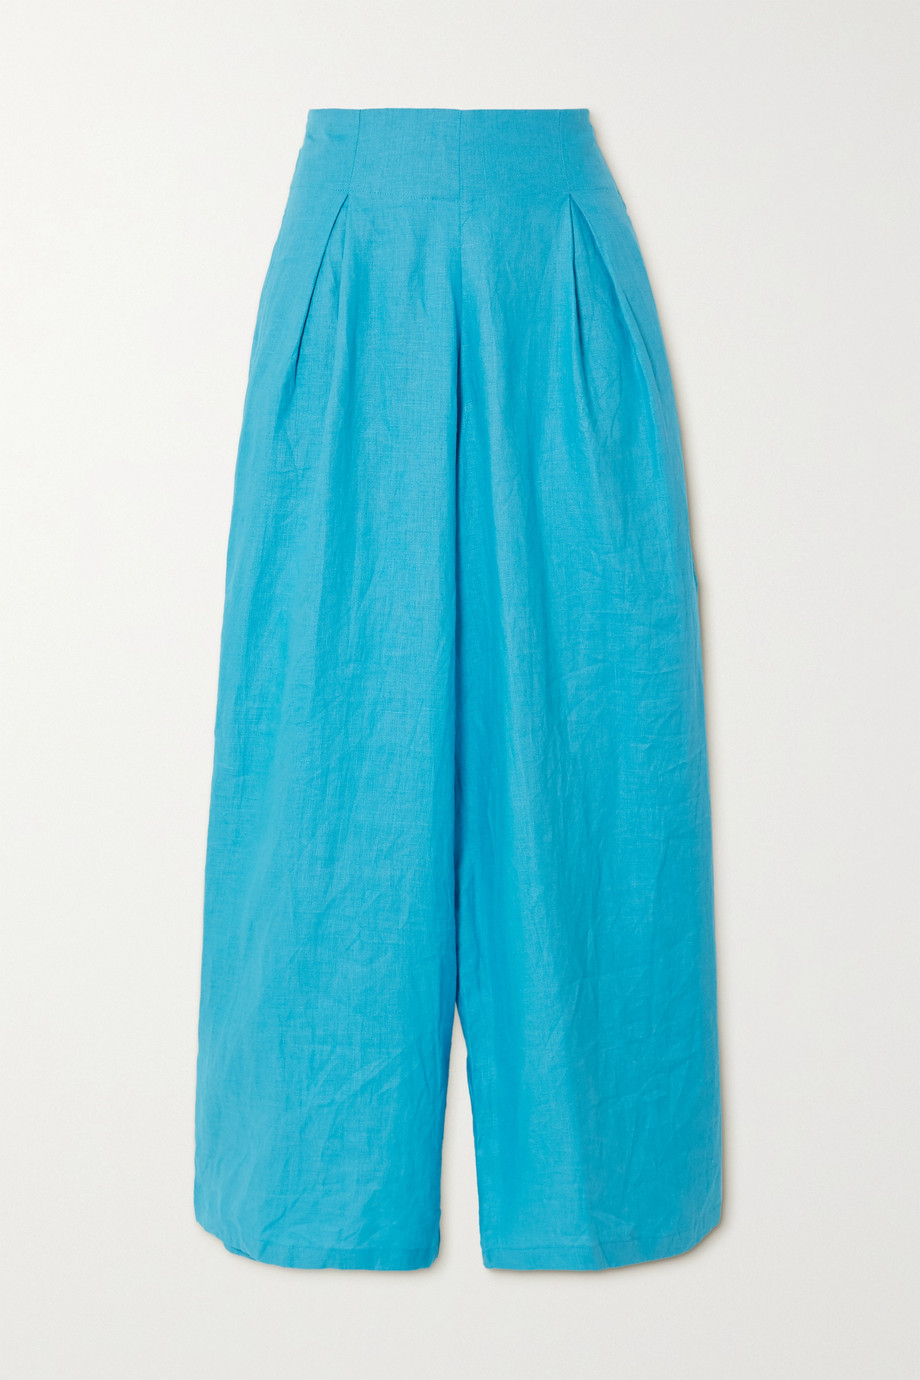 Faithfull The Brand + NET SUSTAIN Meridian linen wide-leg pants